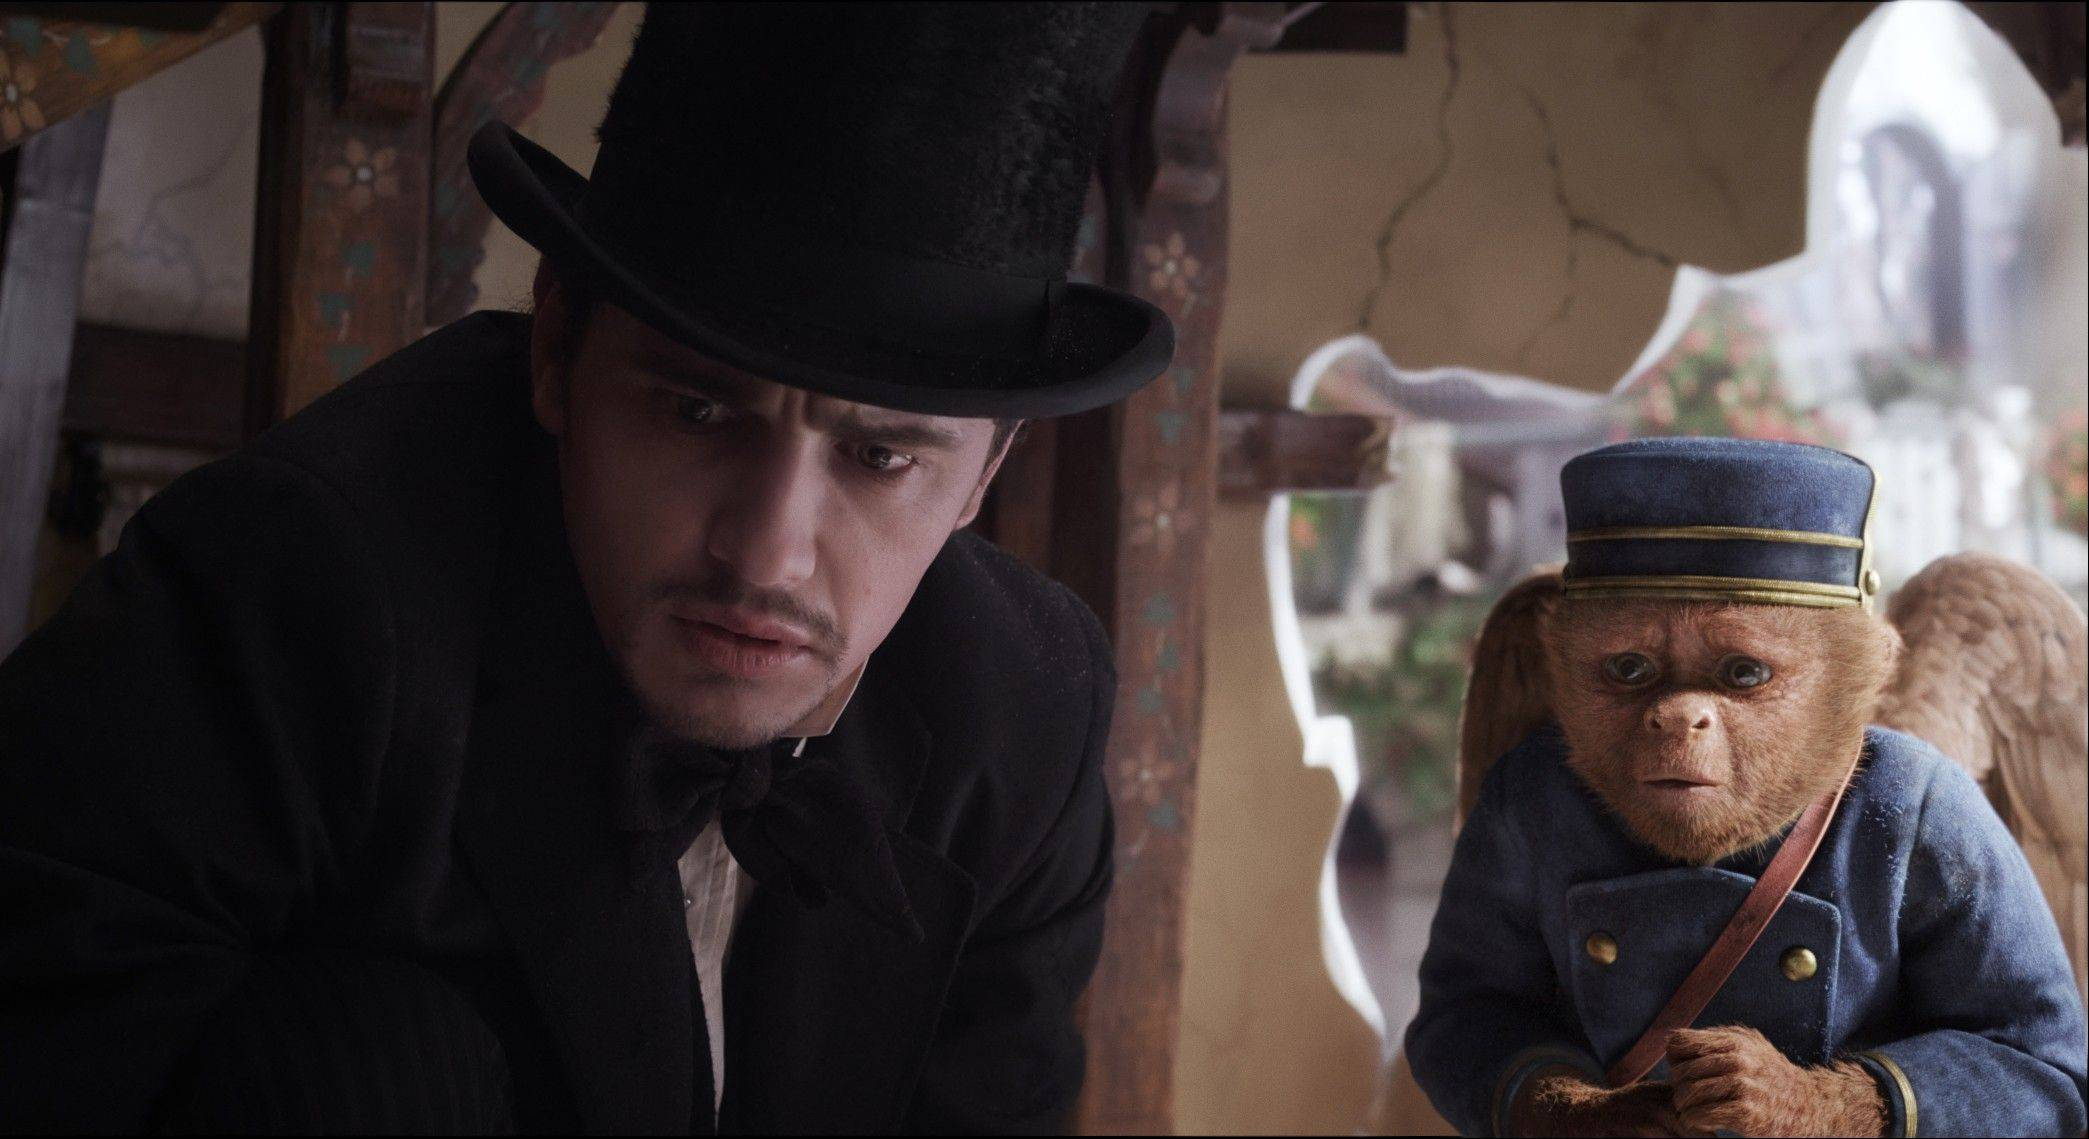 "This file film image provided by Disney Enterprises shows James Franco, as Oz, left, and the character Finley, voiced by Zach Braff, in a scene from ""Oz the Great and Powerful."" The Walt Disney 3-D blockbuster has led all films for the second week in a row, taking in $42.2 million according to studio estimates Sunday, March 17, 2013."